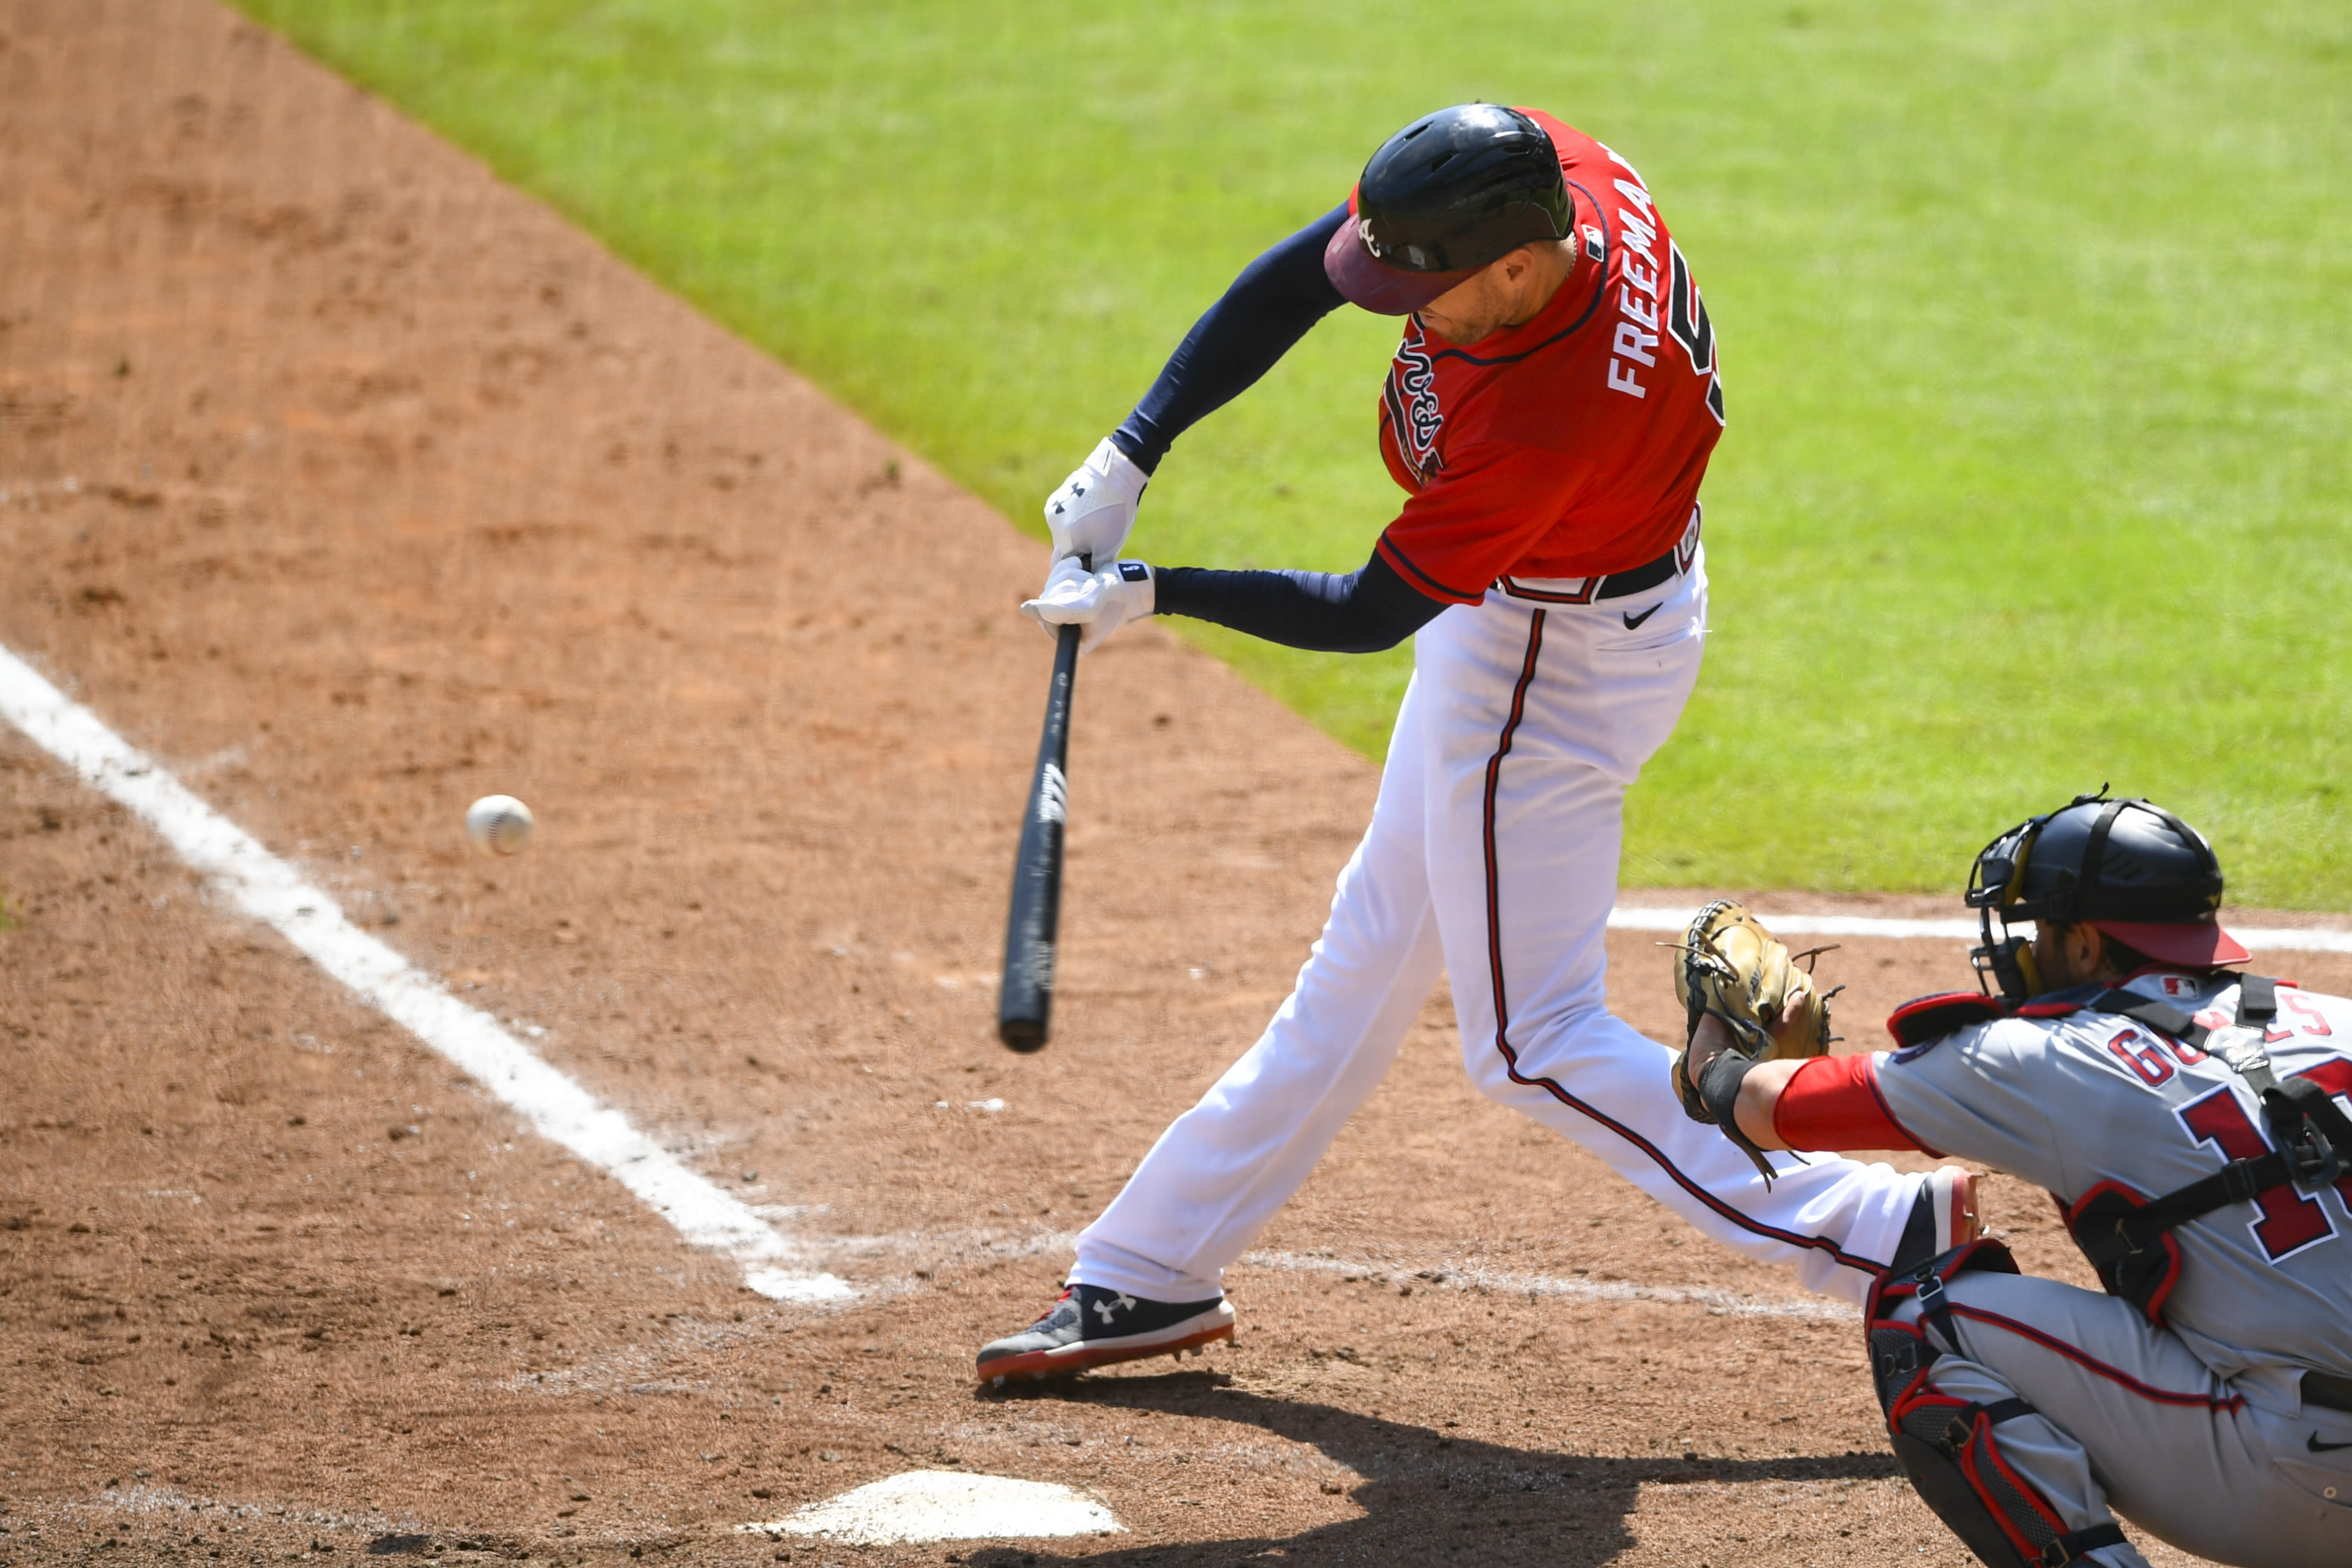 Atlanta Braves' Freddie Freeman connects for a grand slam over left center field during the sixth inning of a baseball game against the Washington Nationals, Sunday, Sept. 6, 2020, in Atlanta. (AP Photo/John Amis)